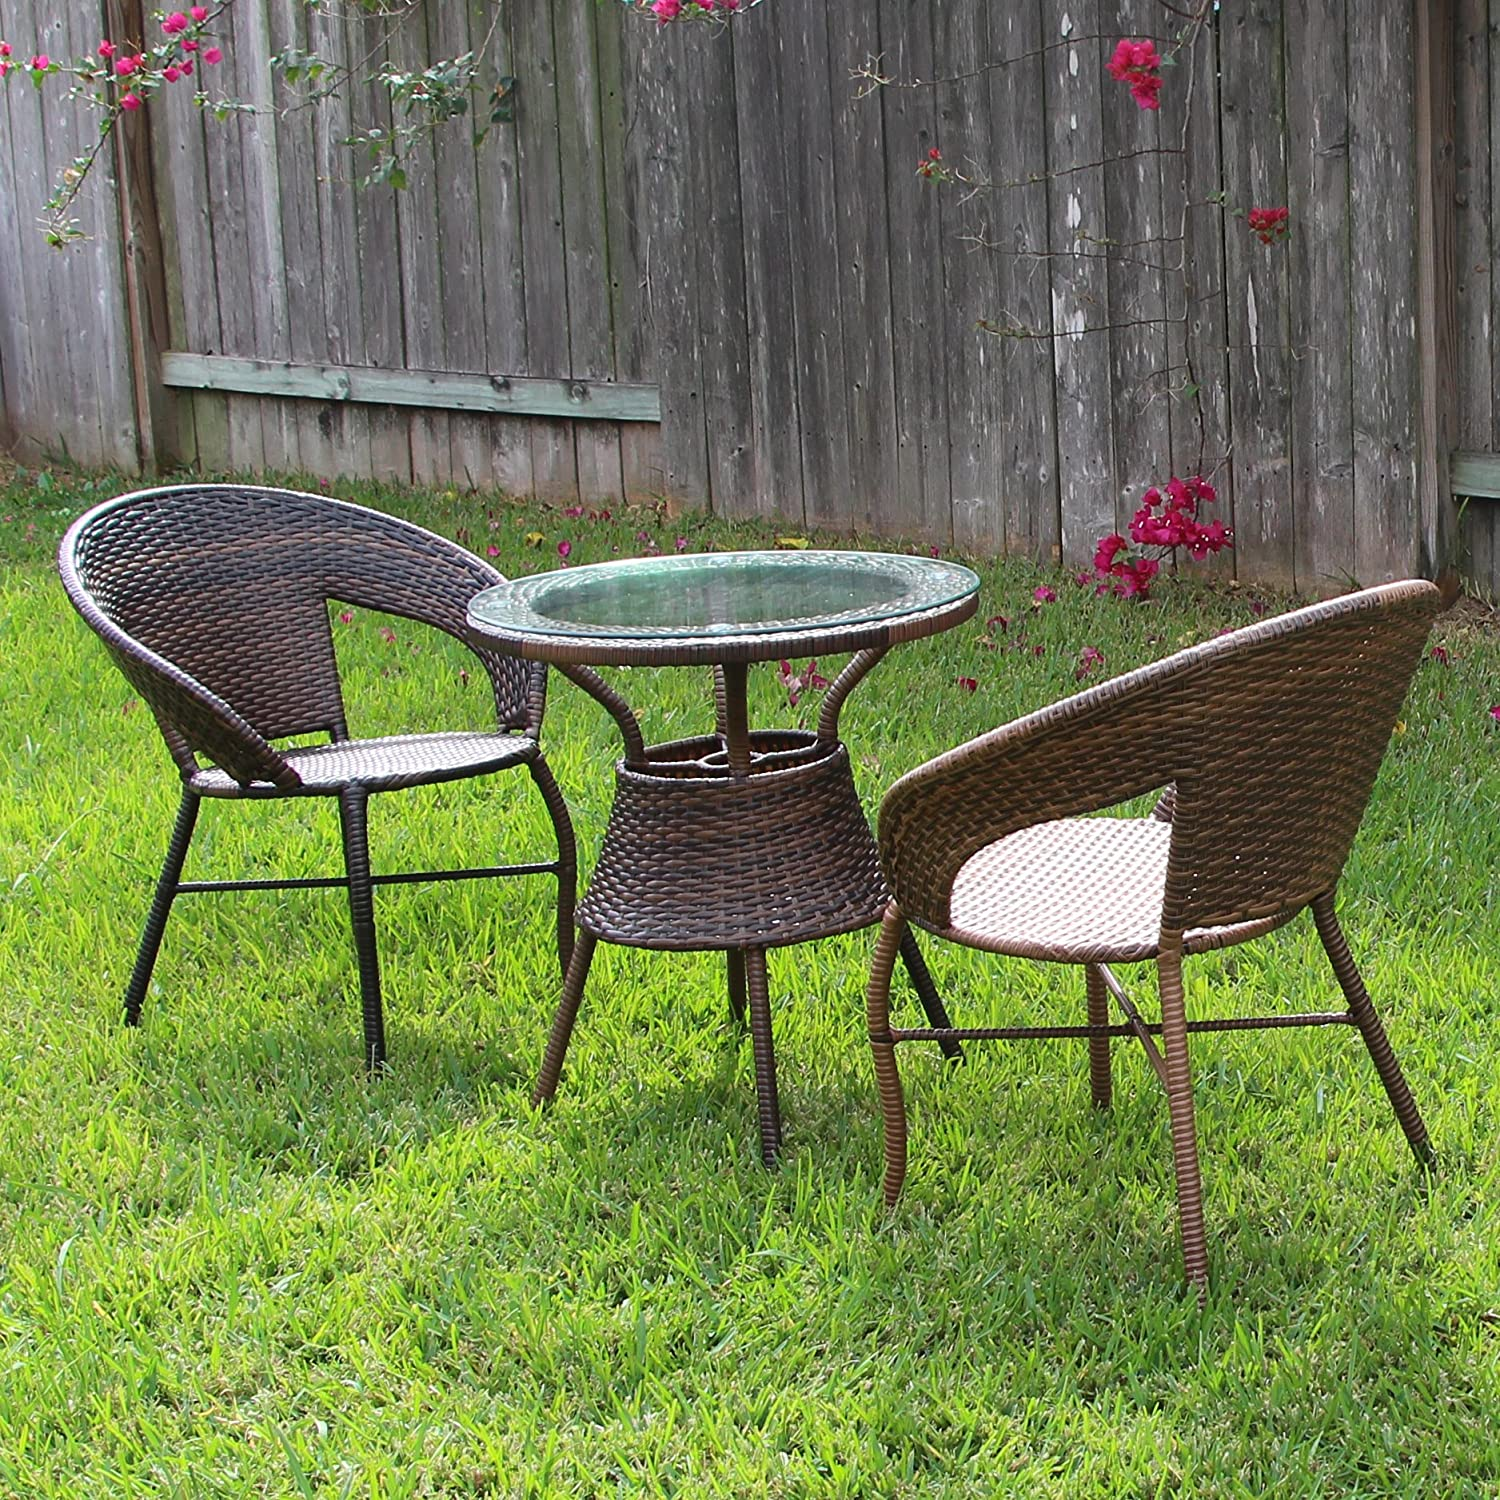 Amazon com yongcun outdoor furniture patio chair table set patio resin rattan one table and two chair type b garden outdoor